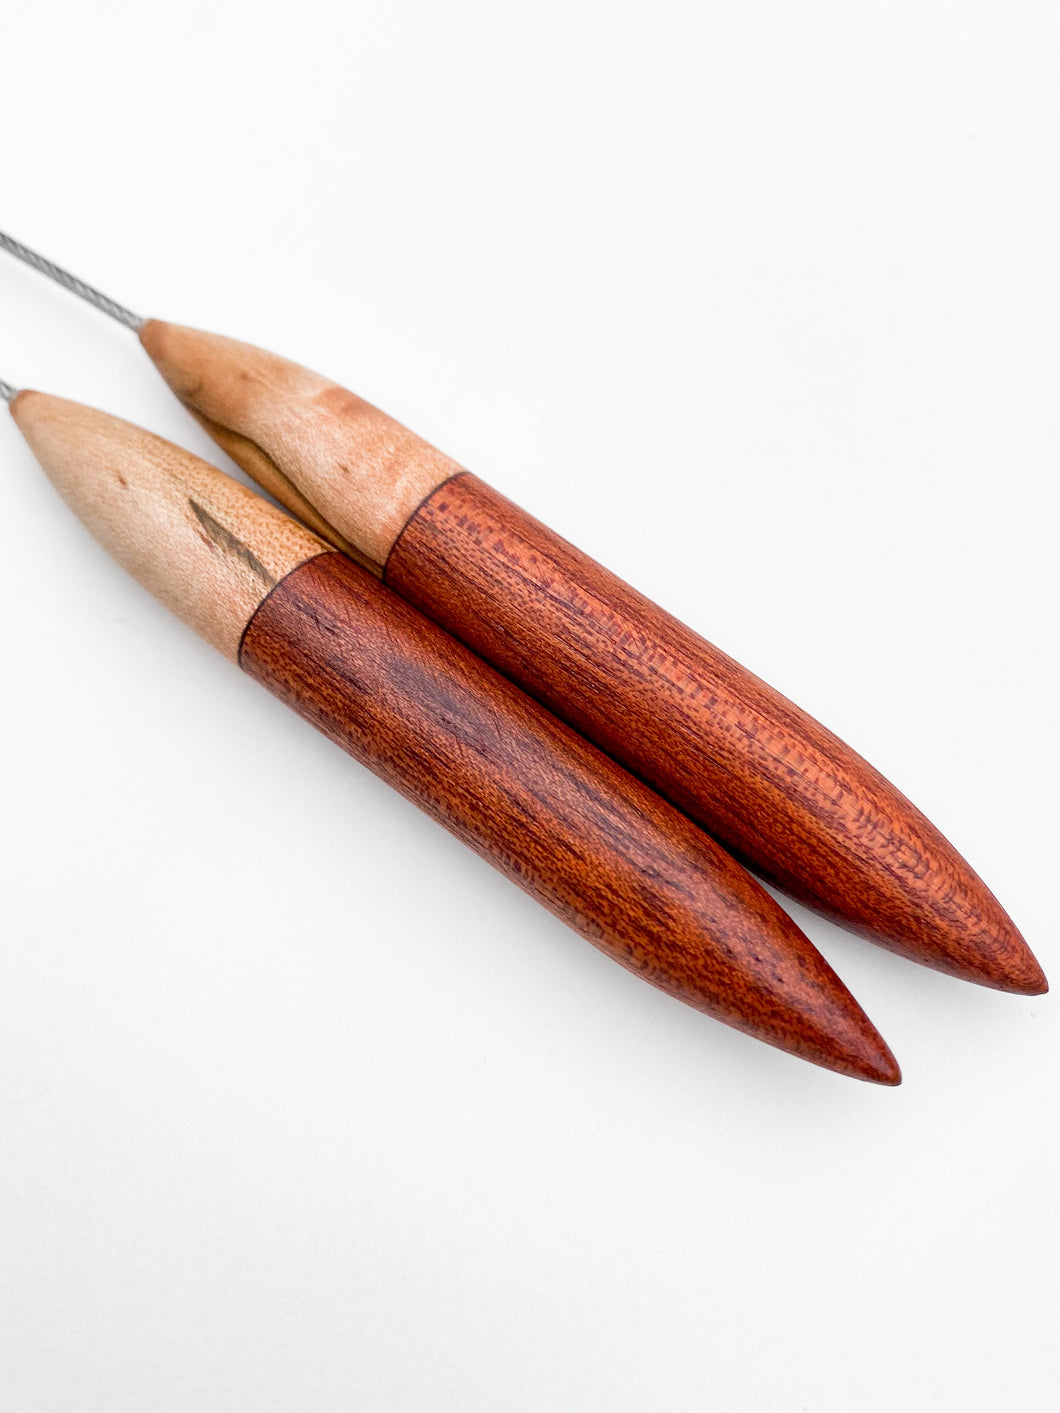 Knitting Needle PREORDER: Ambrosia Maple + Bloodwood